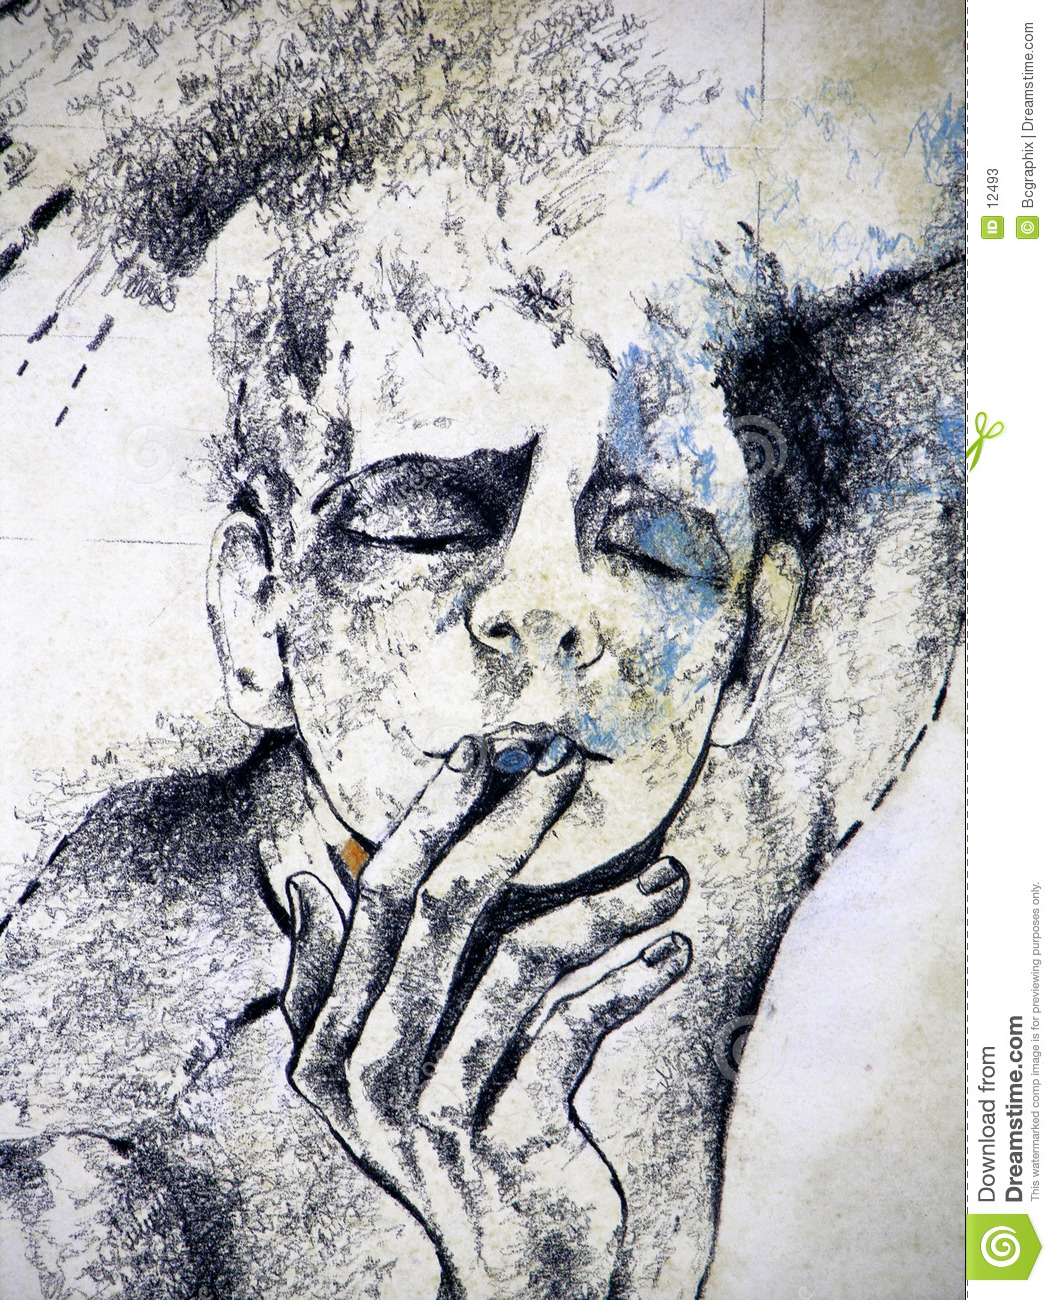 Drawing of a man smoking a cigarette